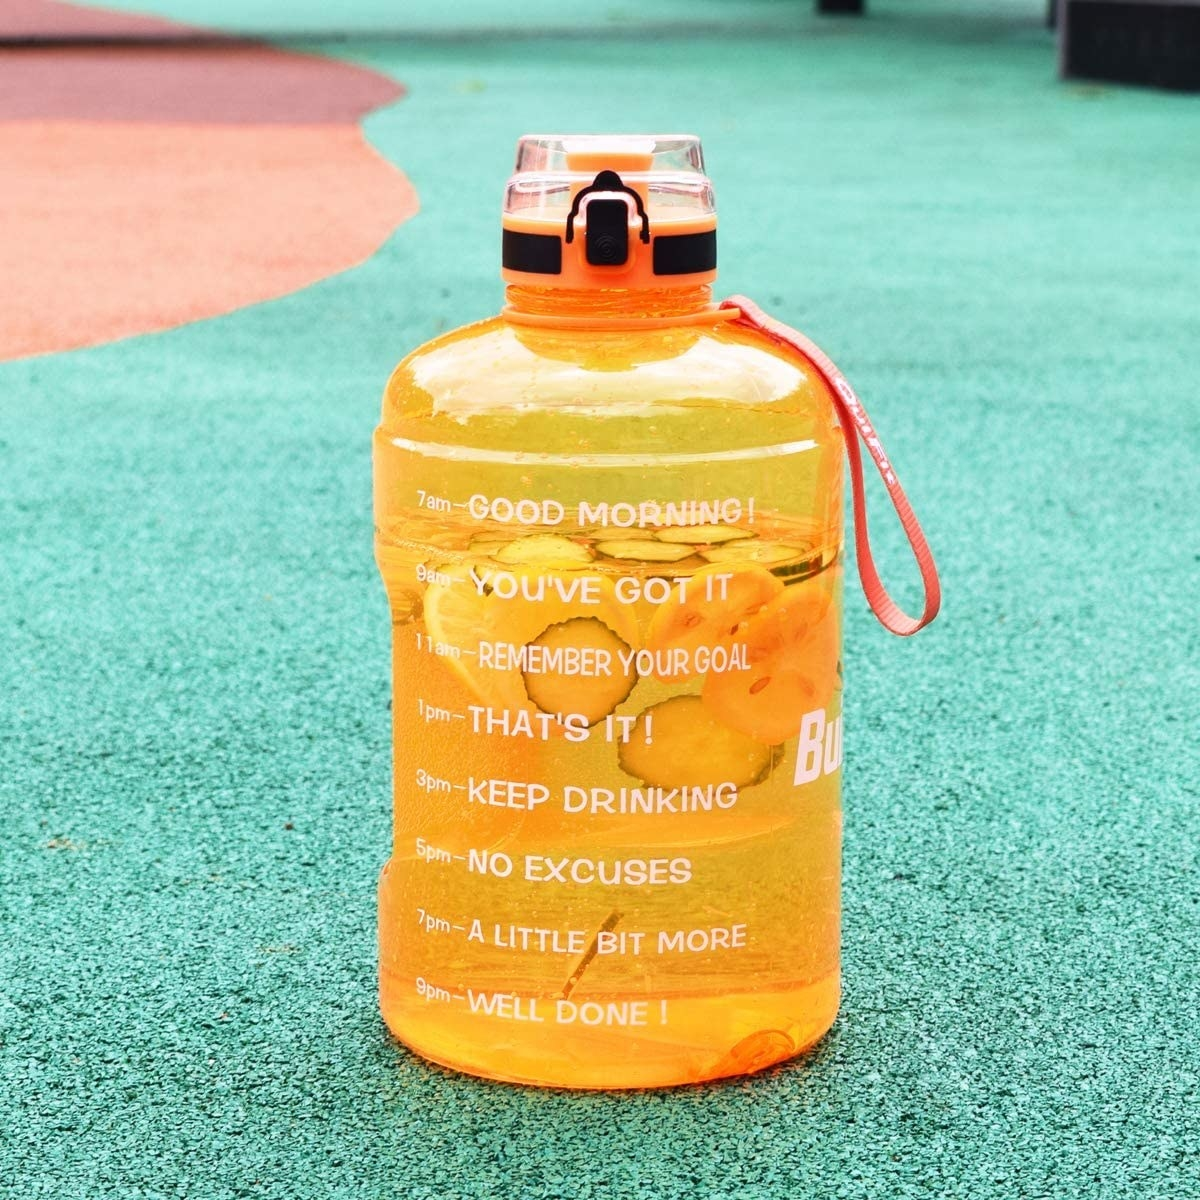 A waterbottle on a track with fruit and water inside